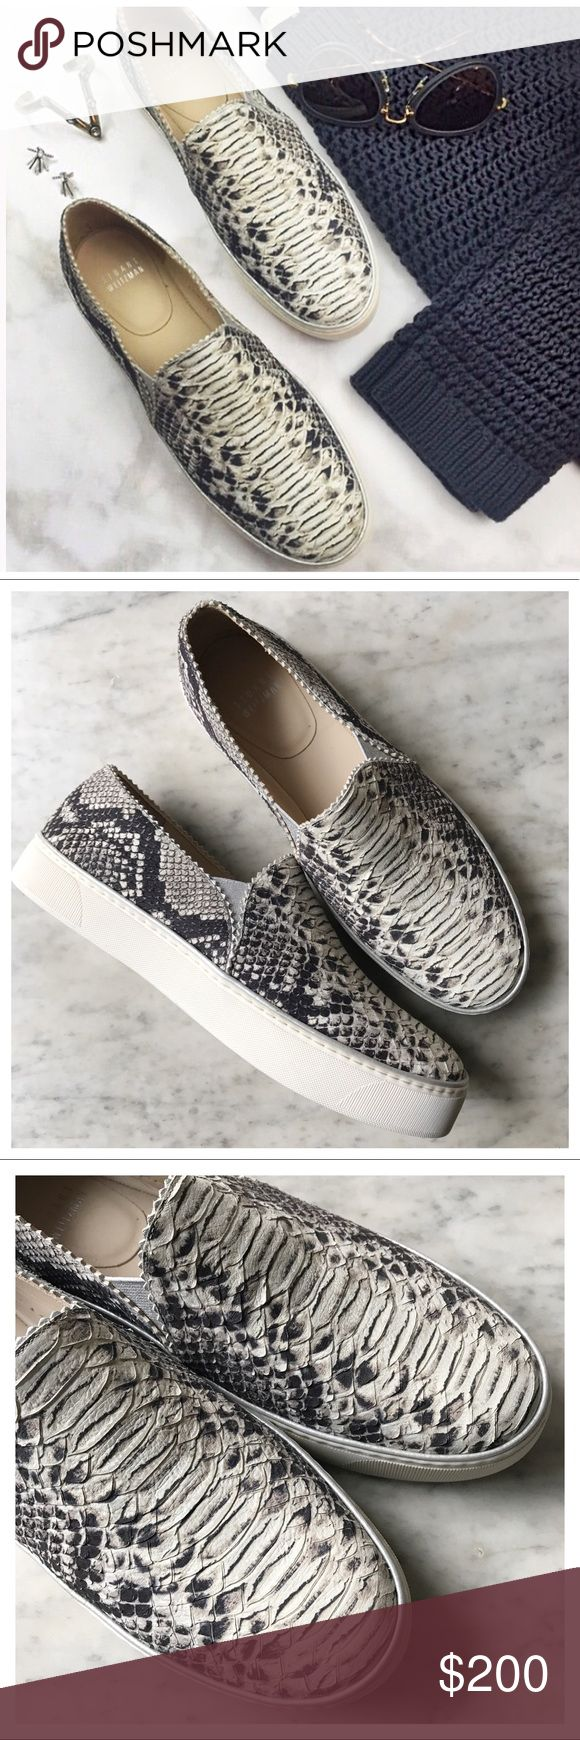 •Stuart Weitzman• Nuggets Snake Print Skate Shoes New never worn!! Please feel free to ask any questions or make an offer! All prices are negotiable! Stuart Weitzman Shoes